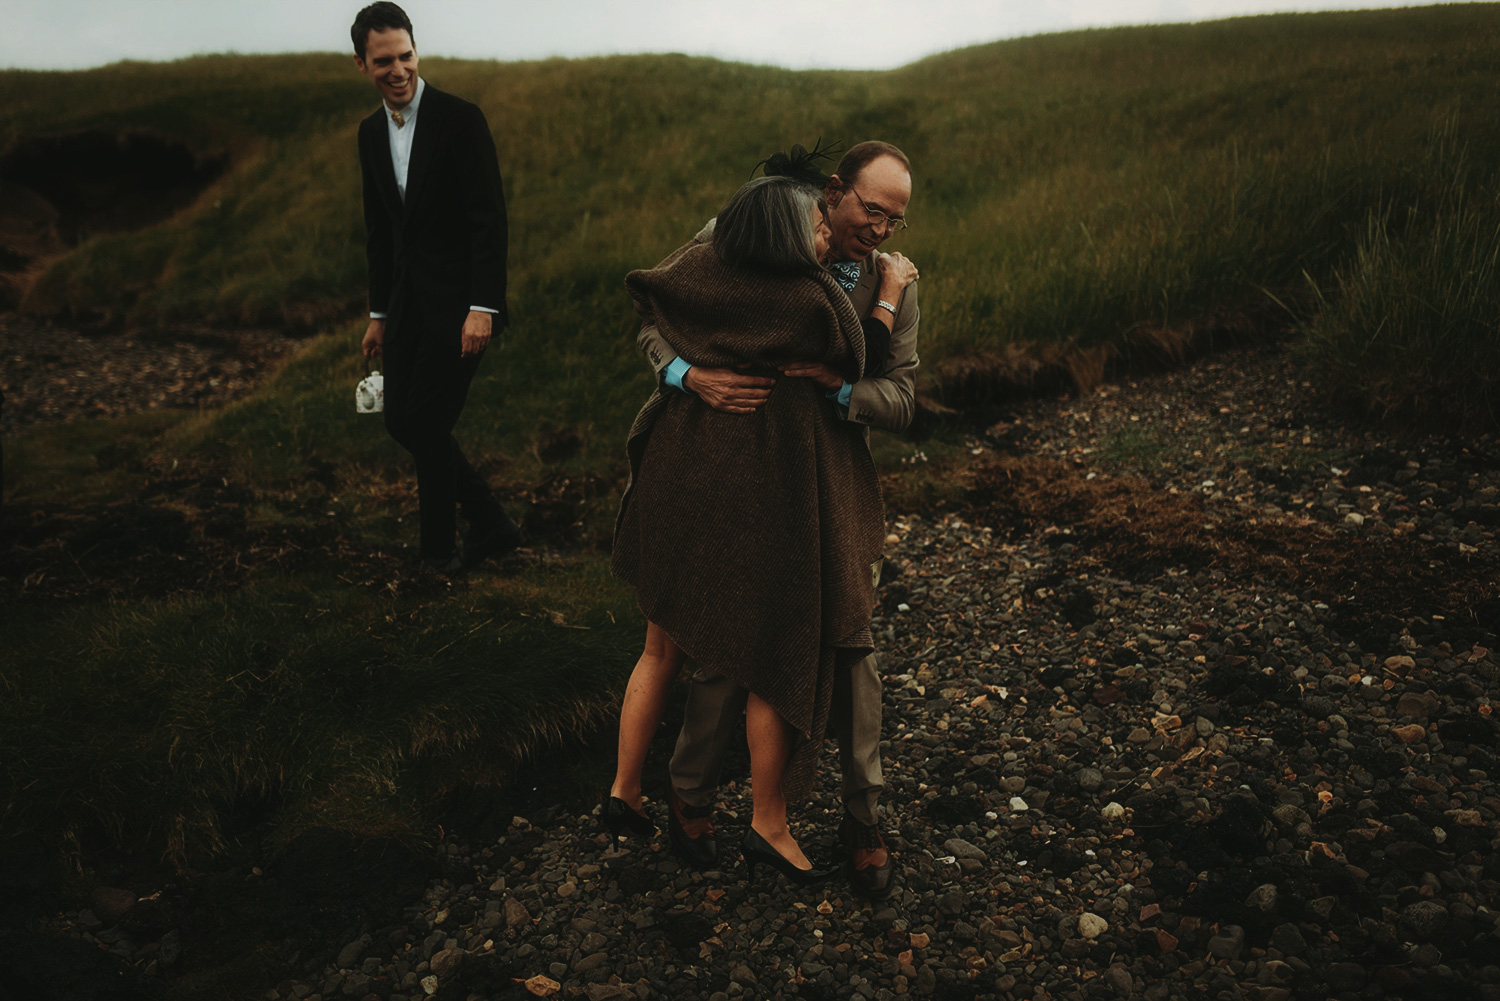 Alternative wedding  photography iceland _ rafal bojar 038.jpg